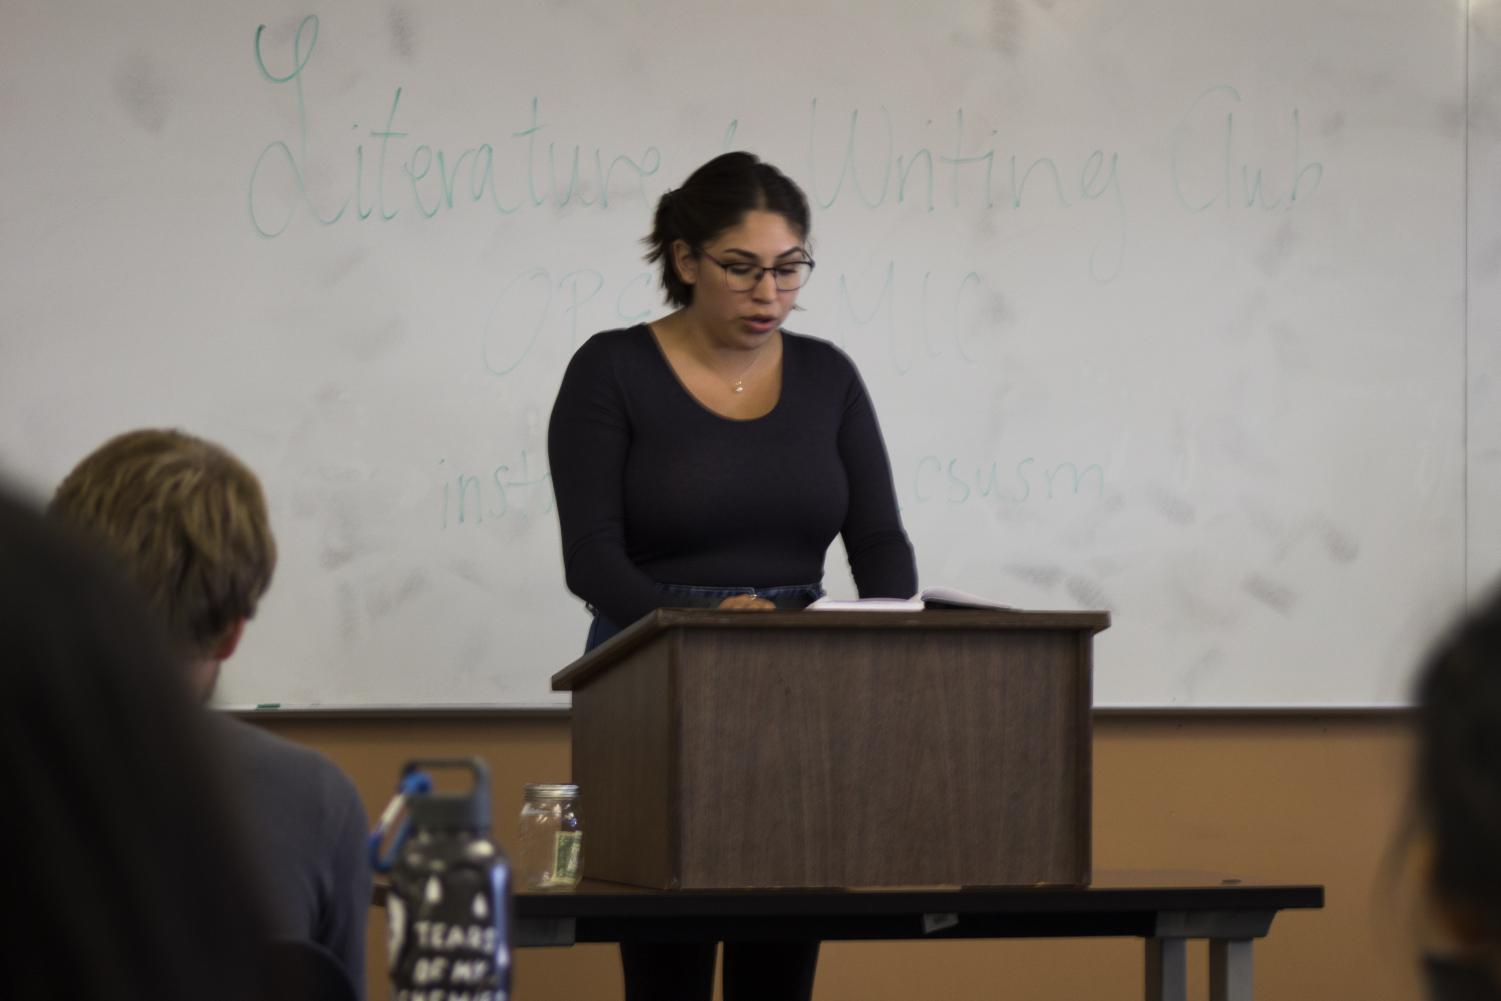 Members of CSUSM's Literature and Writing club share their writing during an open mic event on Oct 3.